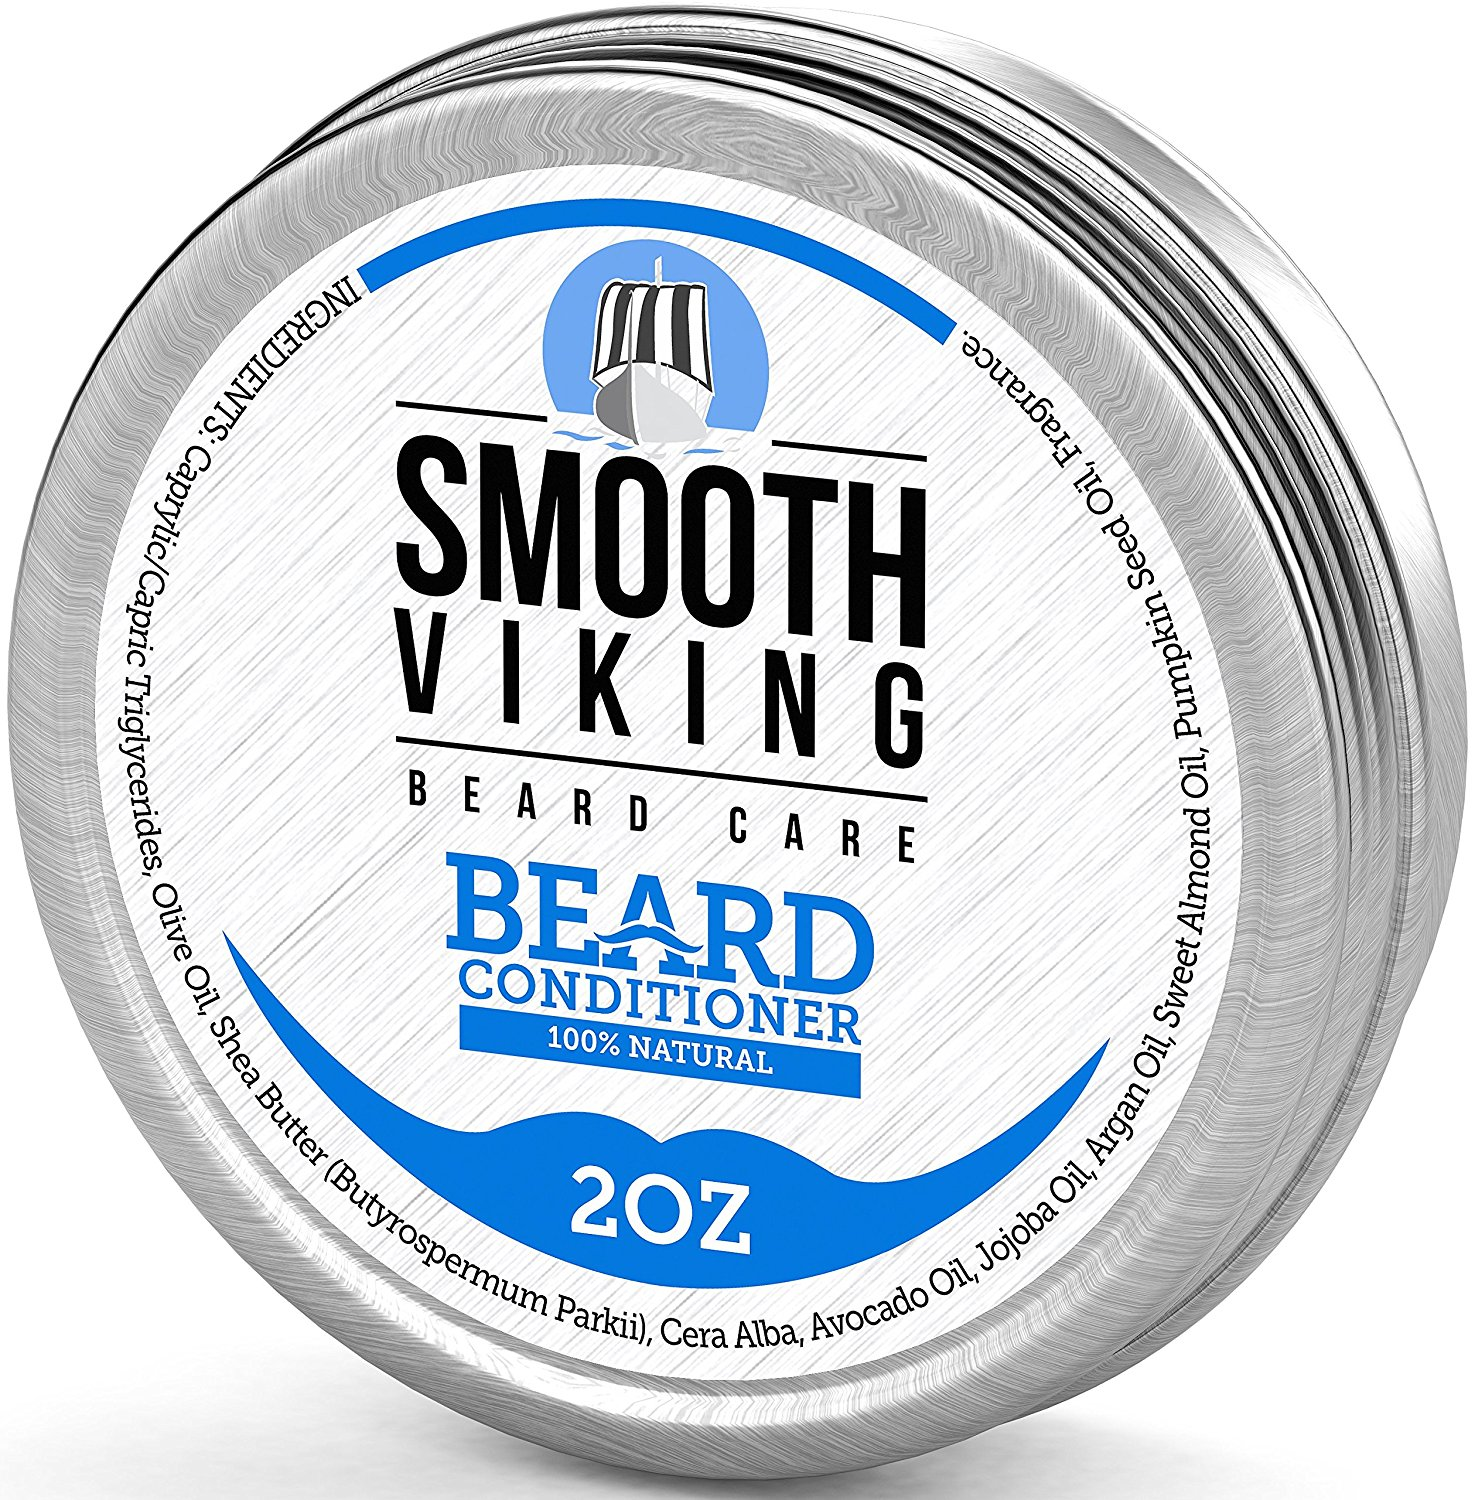 Smooth Viking Beard Conditioner for Men with Argan Oil, Shea Butter and Beeswax - Natural Wax Conditioning Softener that Soothes Itching